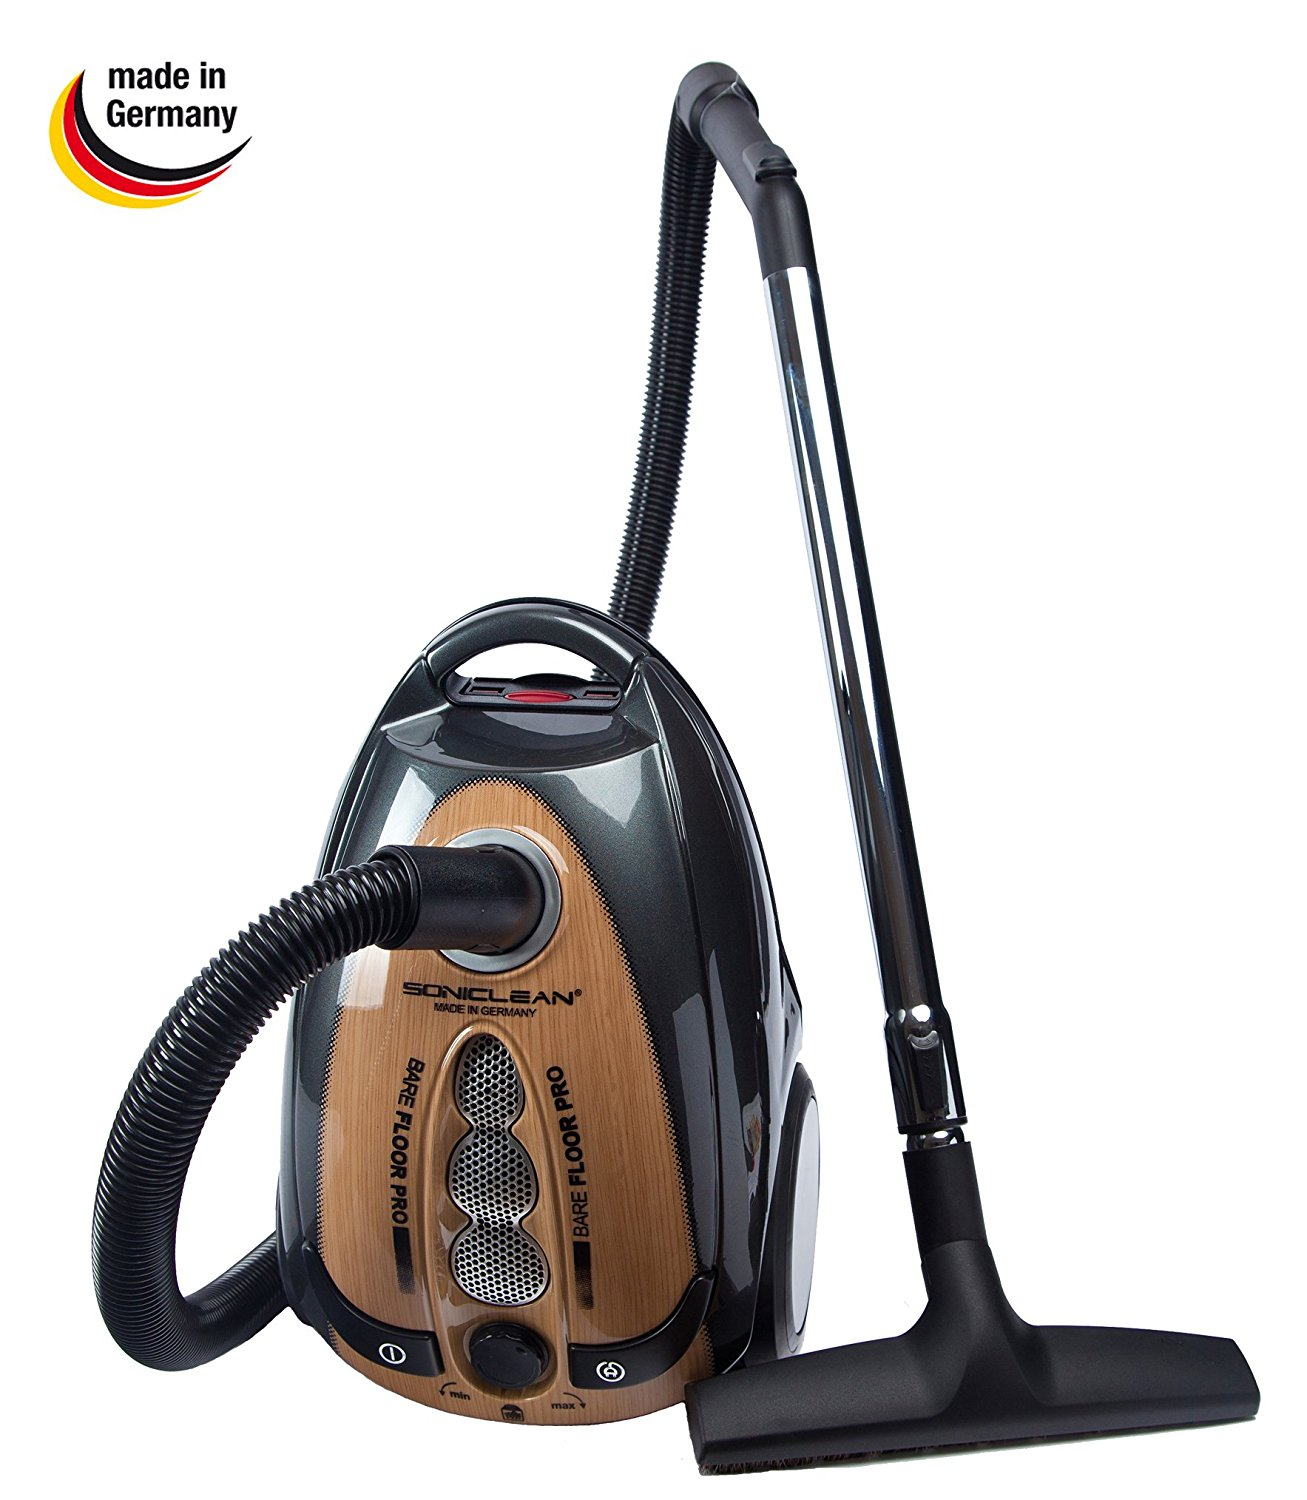 Best Canister Vacuum For Hardwood Floors Guide And Reviews